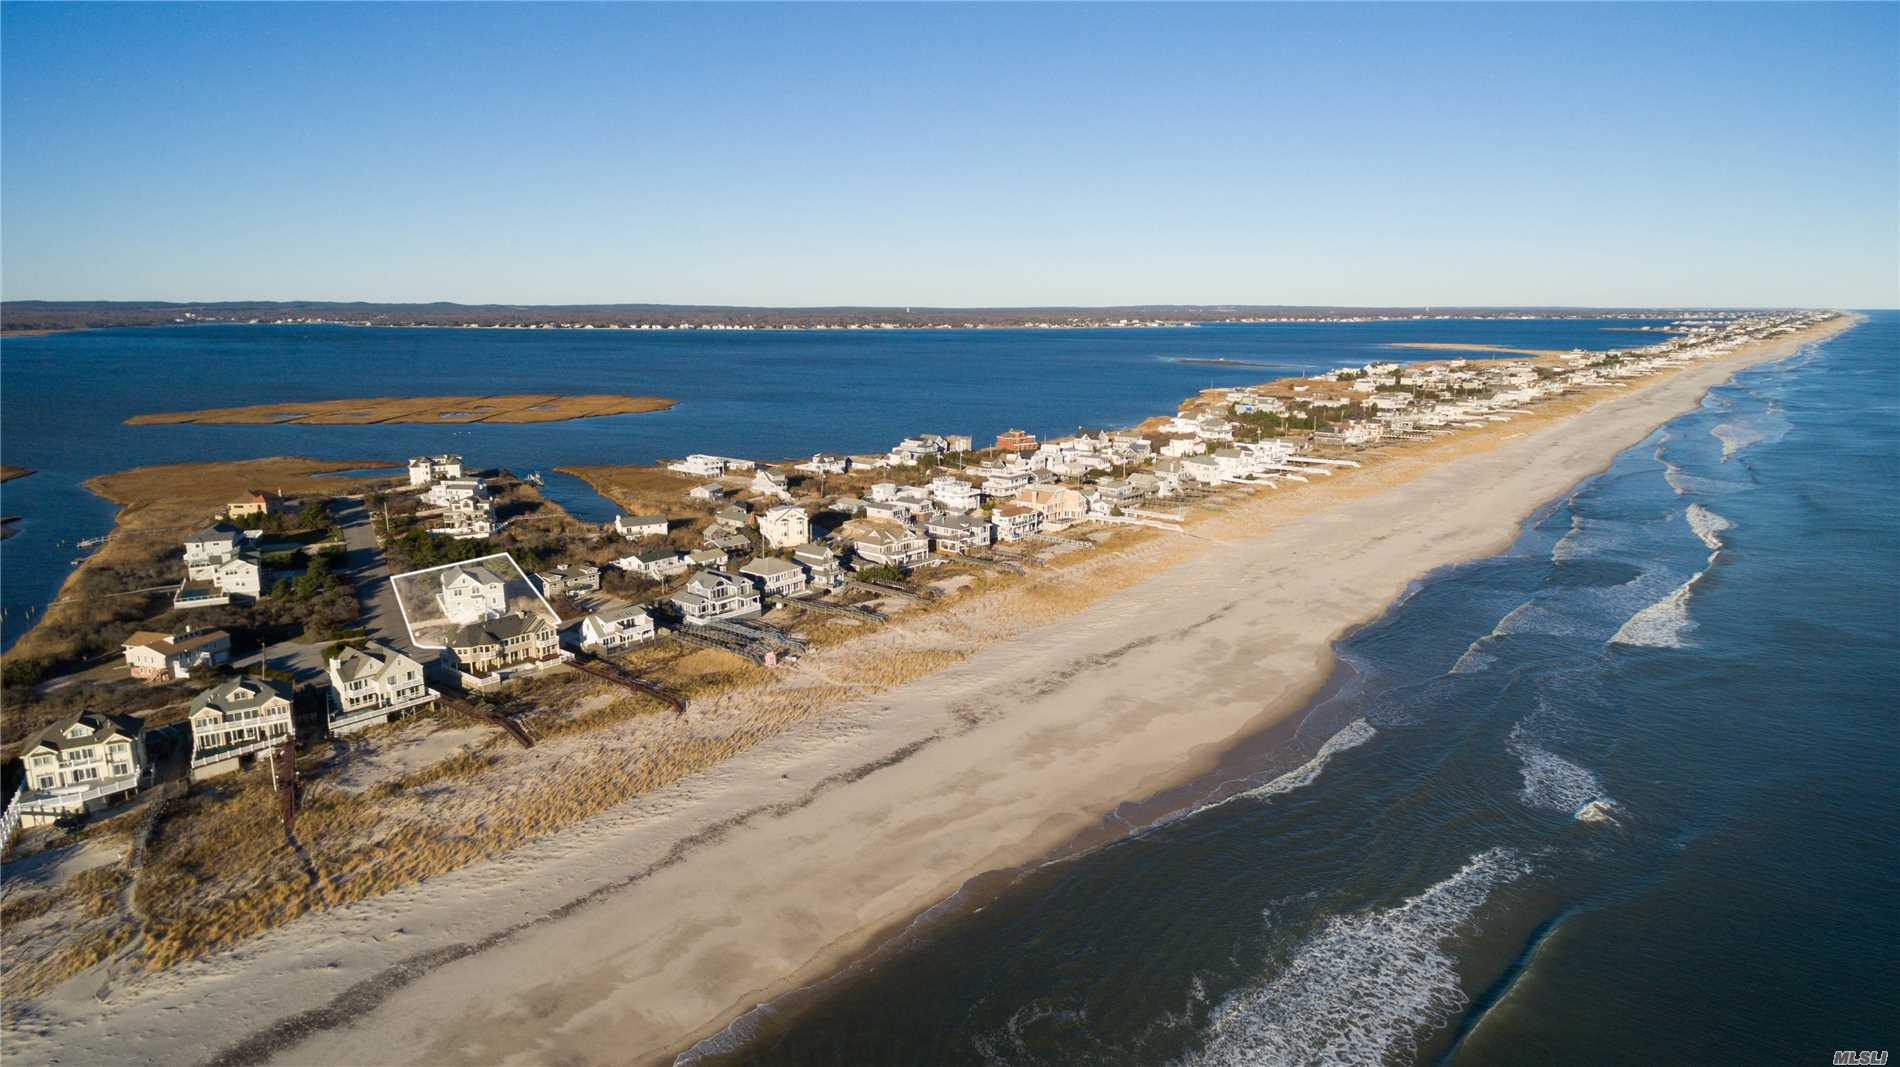 902 Dune Rd - Westhampton Beach, New York